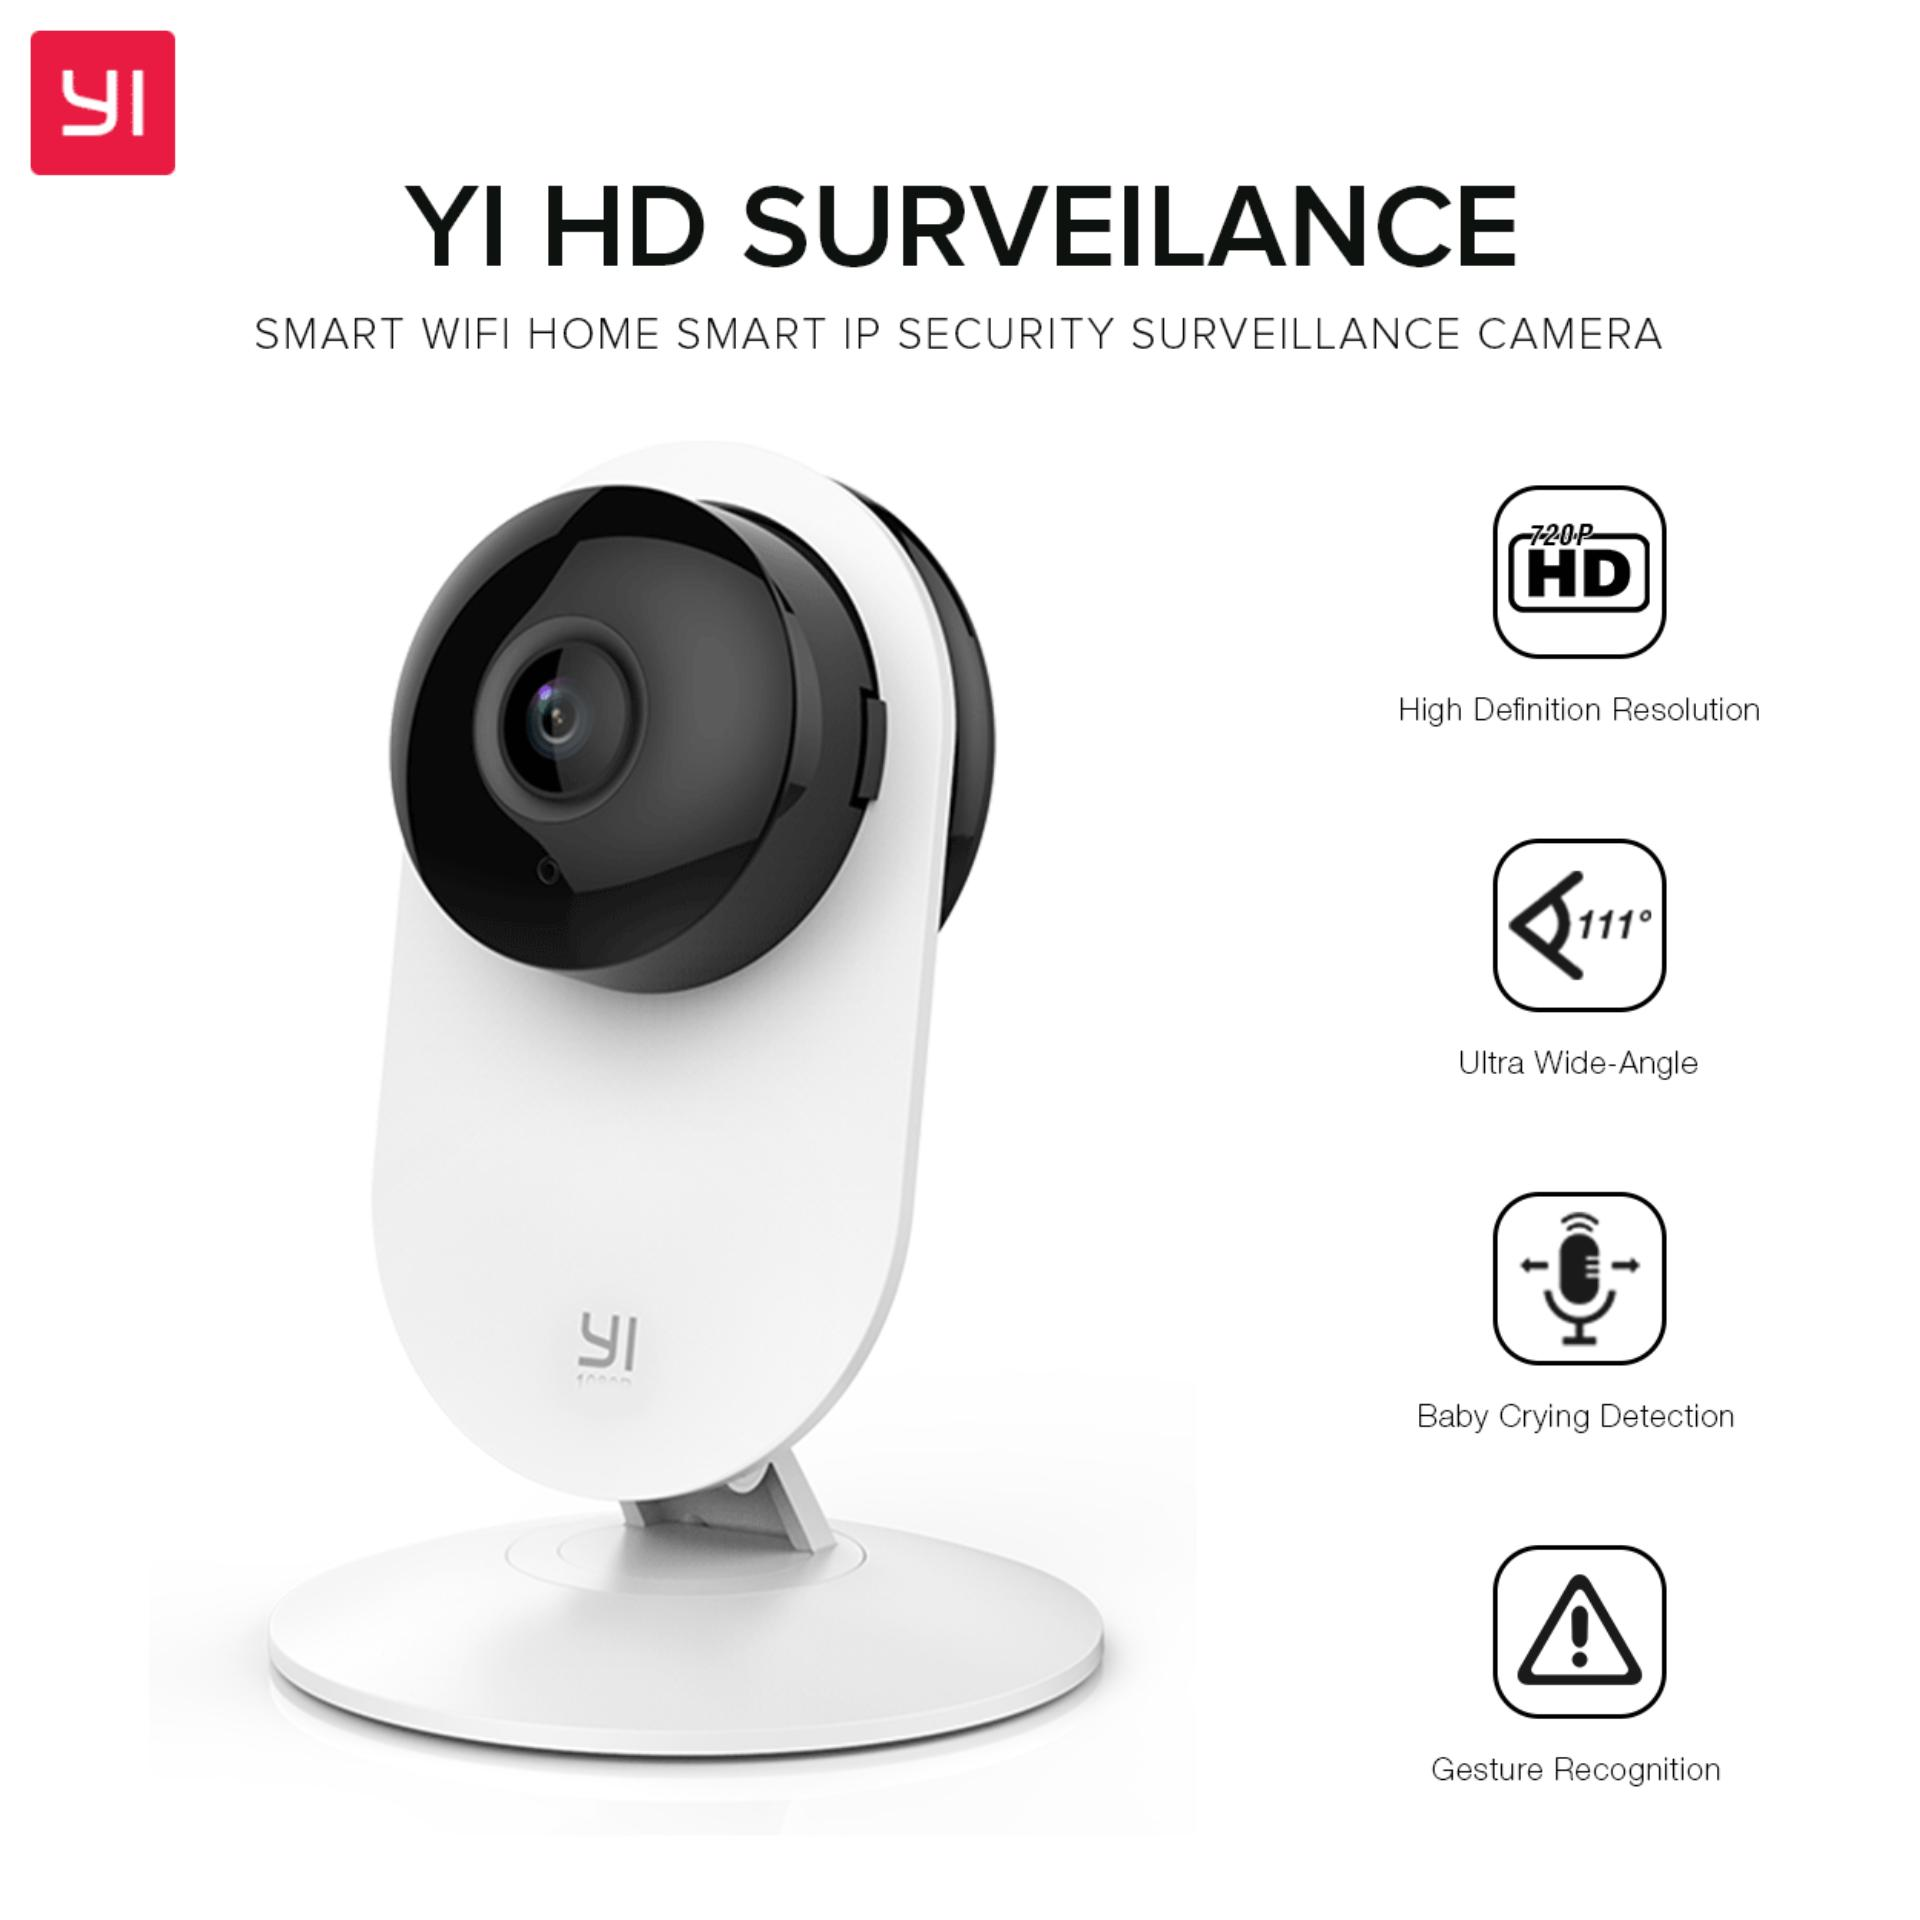 Security Camera For Sale Surveillance Prices Brands Channel Remote View Mobile Dvr With Shock Sensor And Wifi Antenna Yi Hd Smart Home Ip 720p White Discount